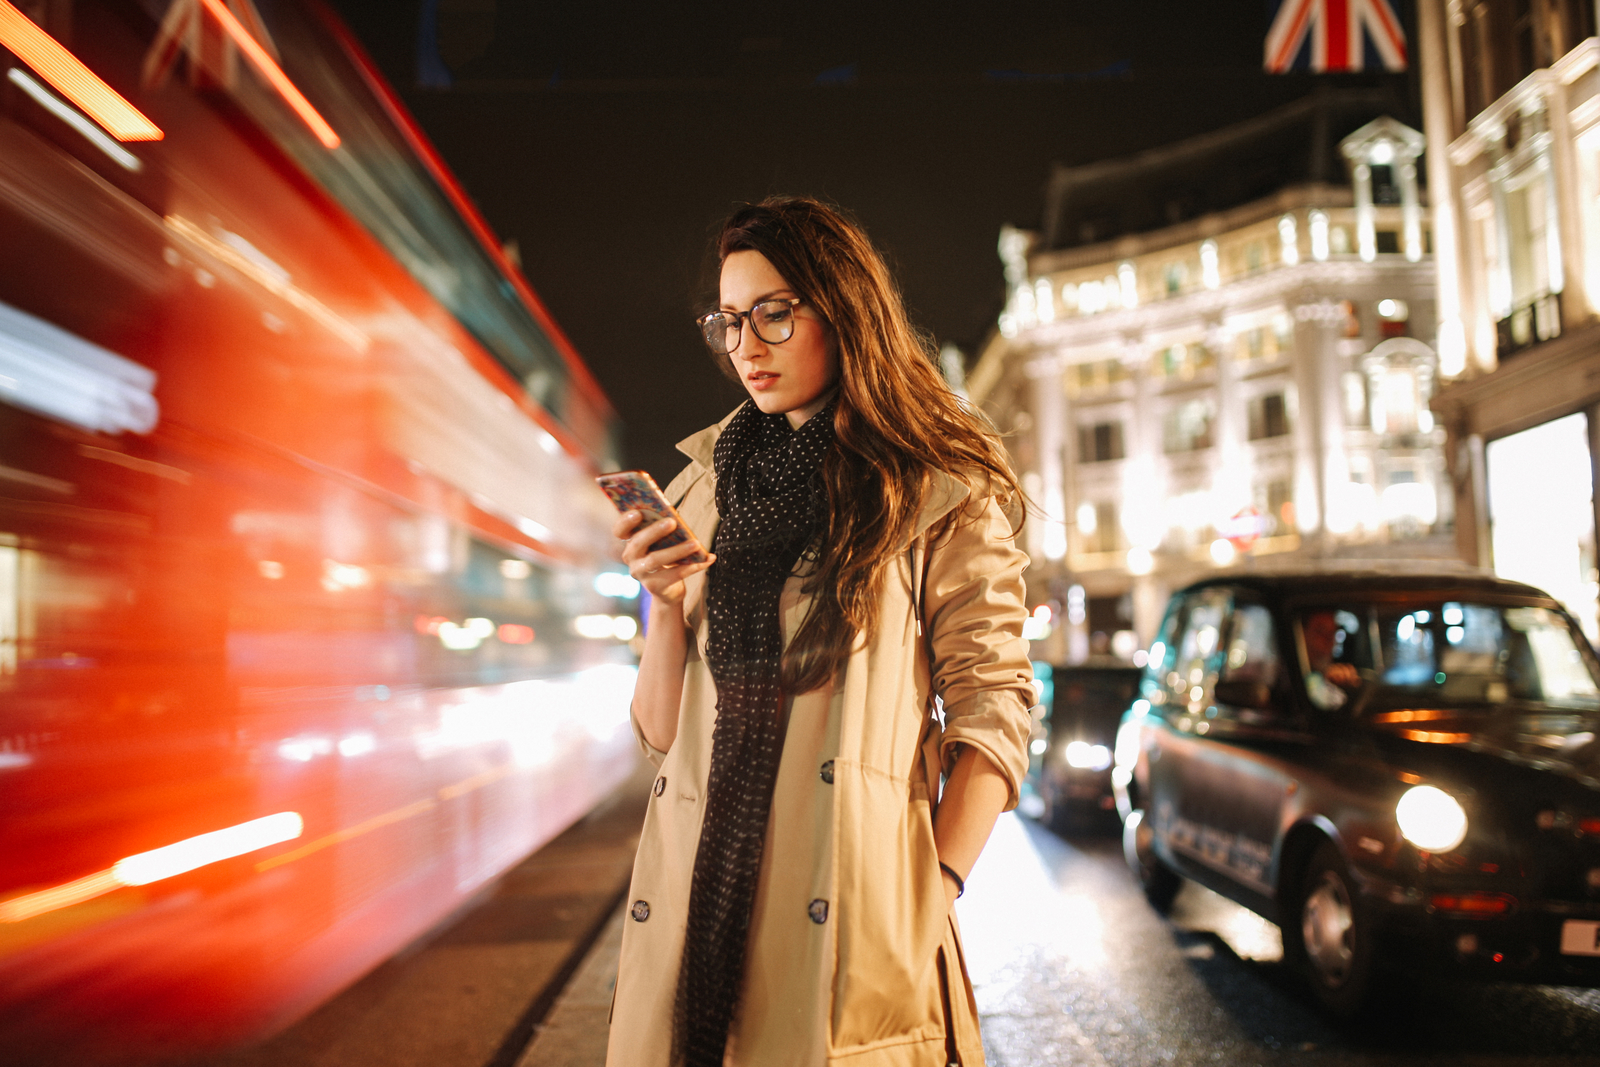 Portrait of a young woman on the busy streets of London downtown in the evening, texting for a cab